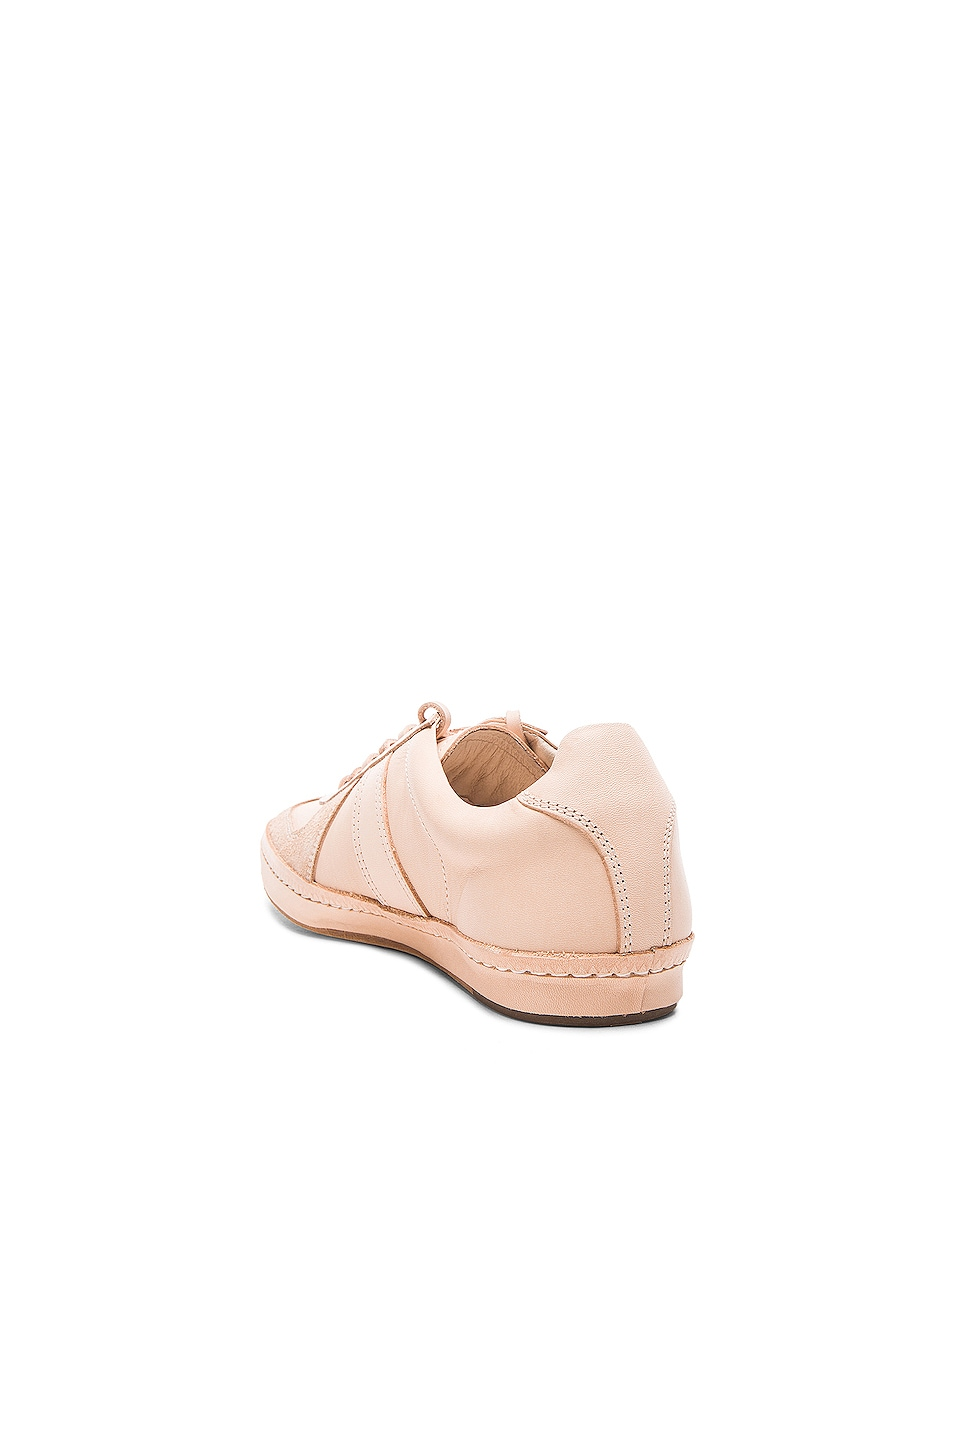 Image 3 of Hender Scheme Manual Industrial Product 05 in Natural